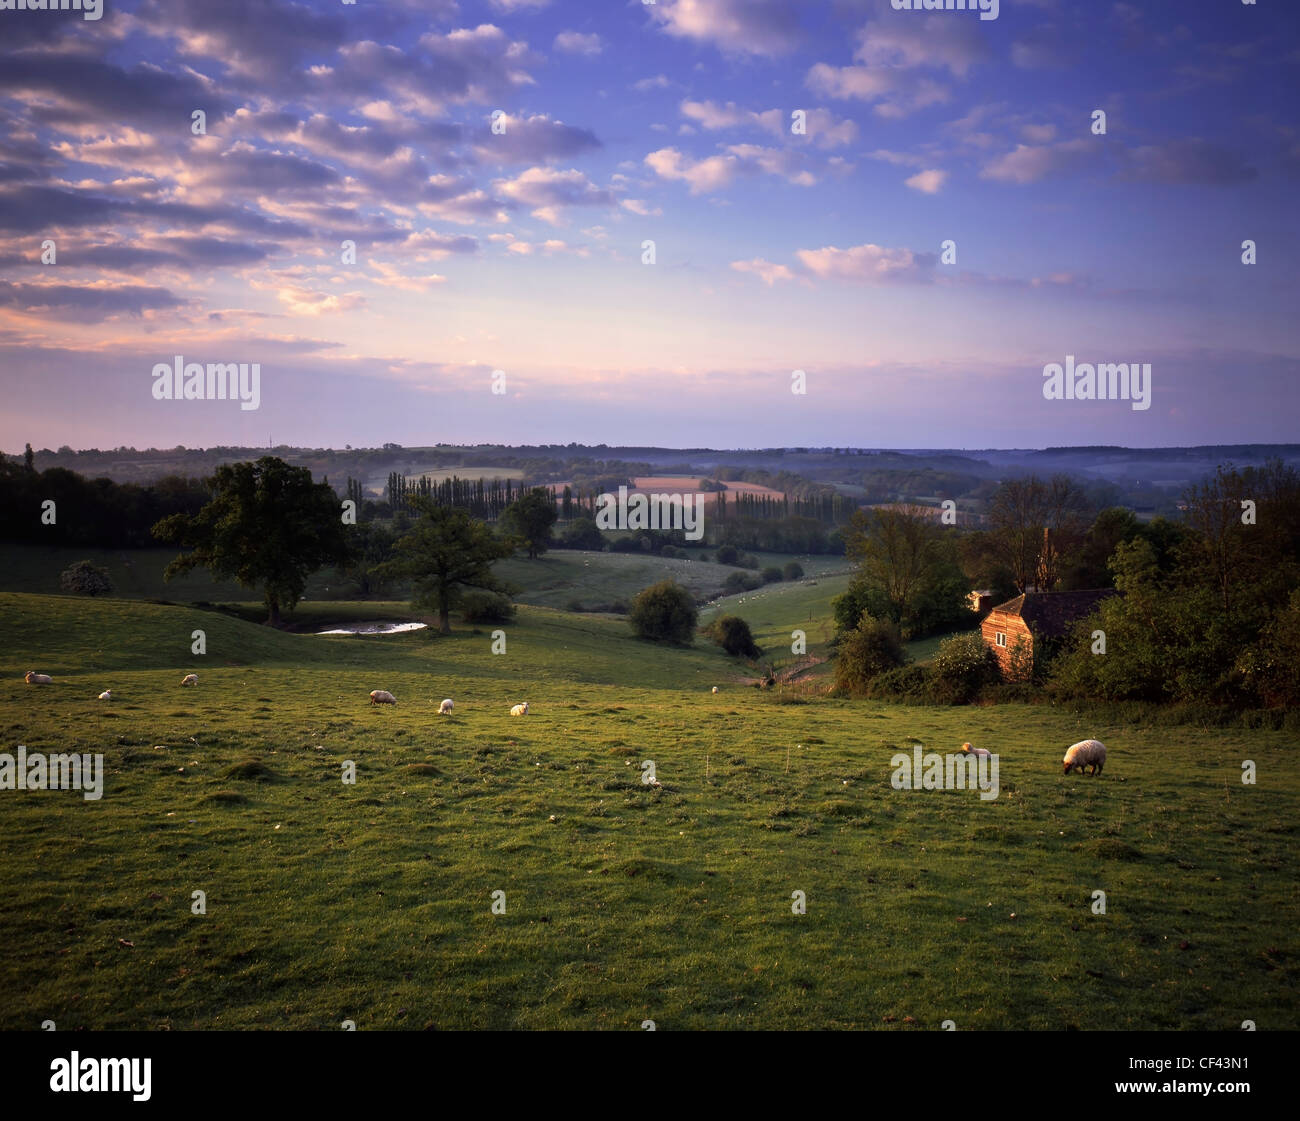 Sheep grazing in a field in the Kent countryside. - Stock Image